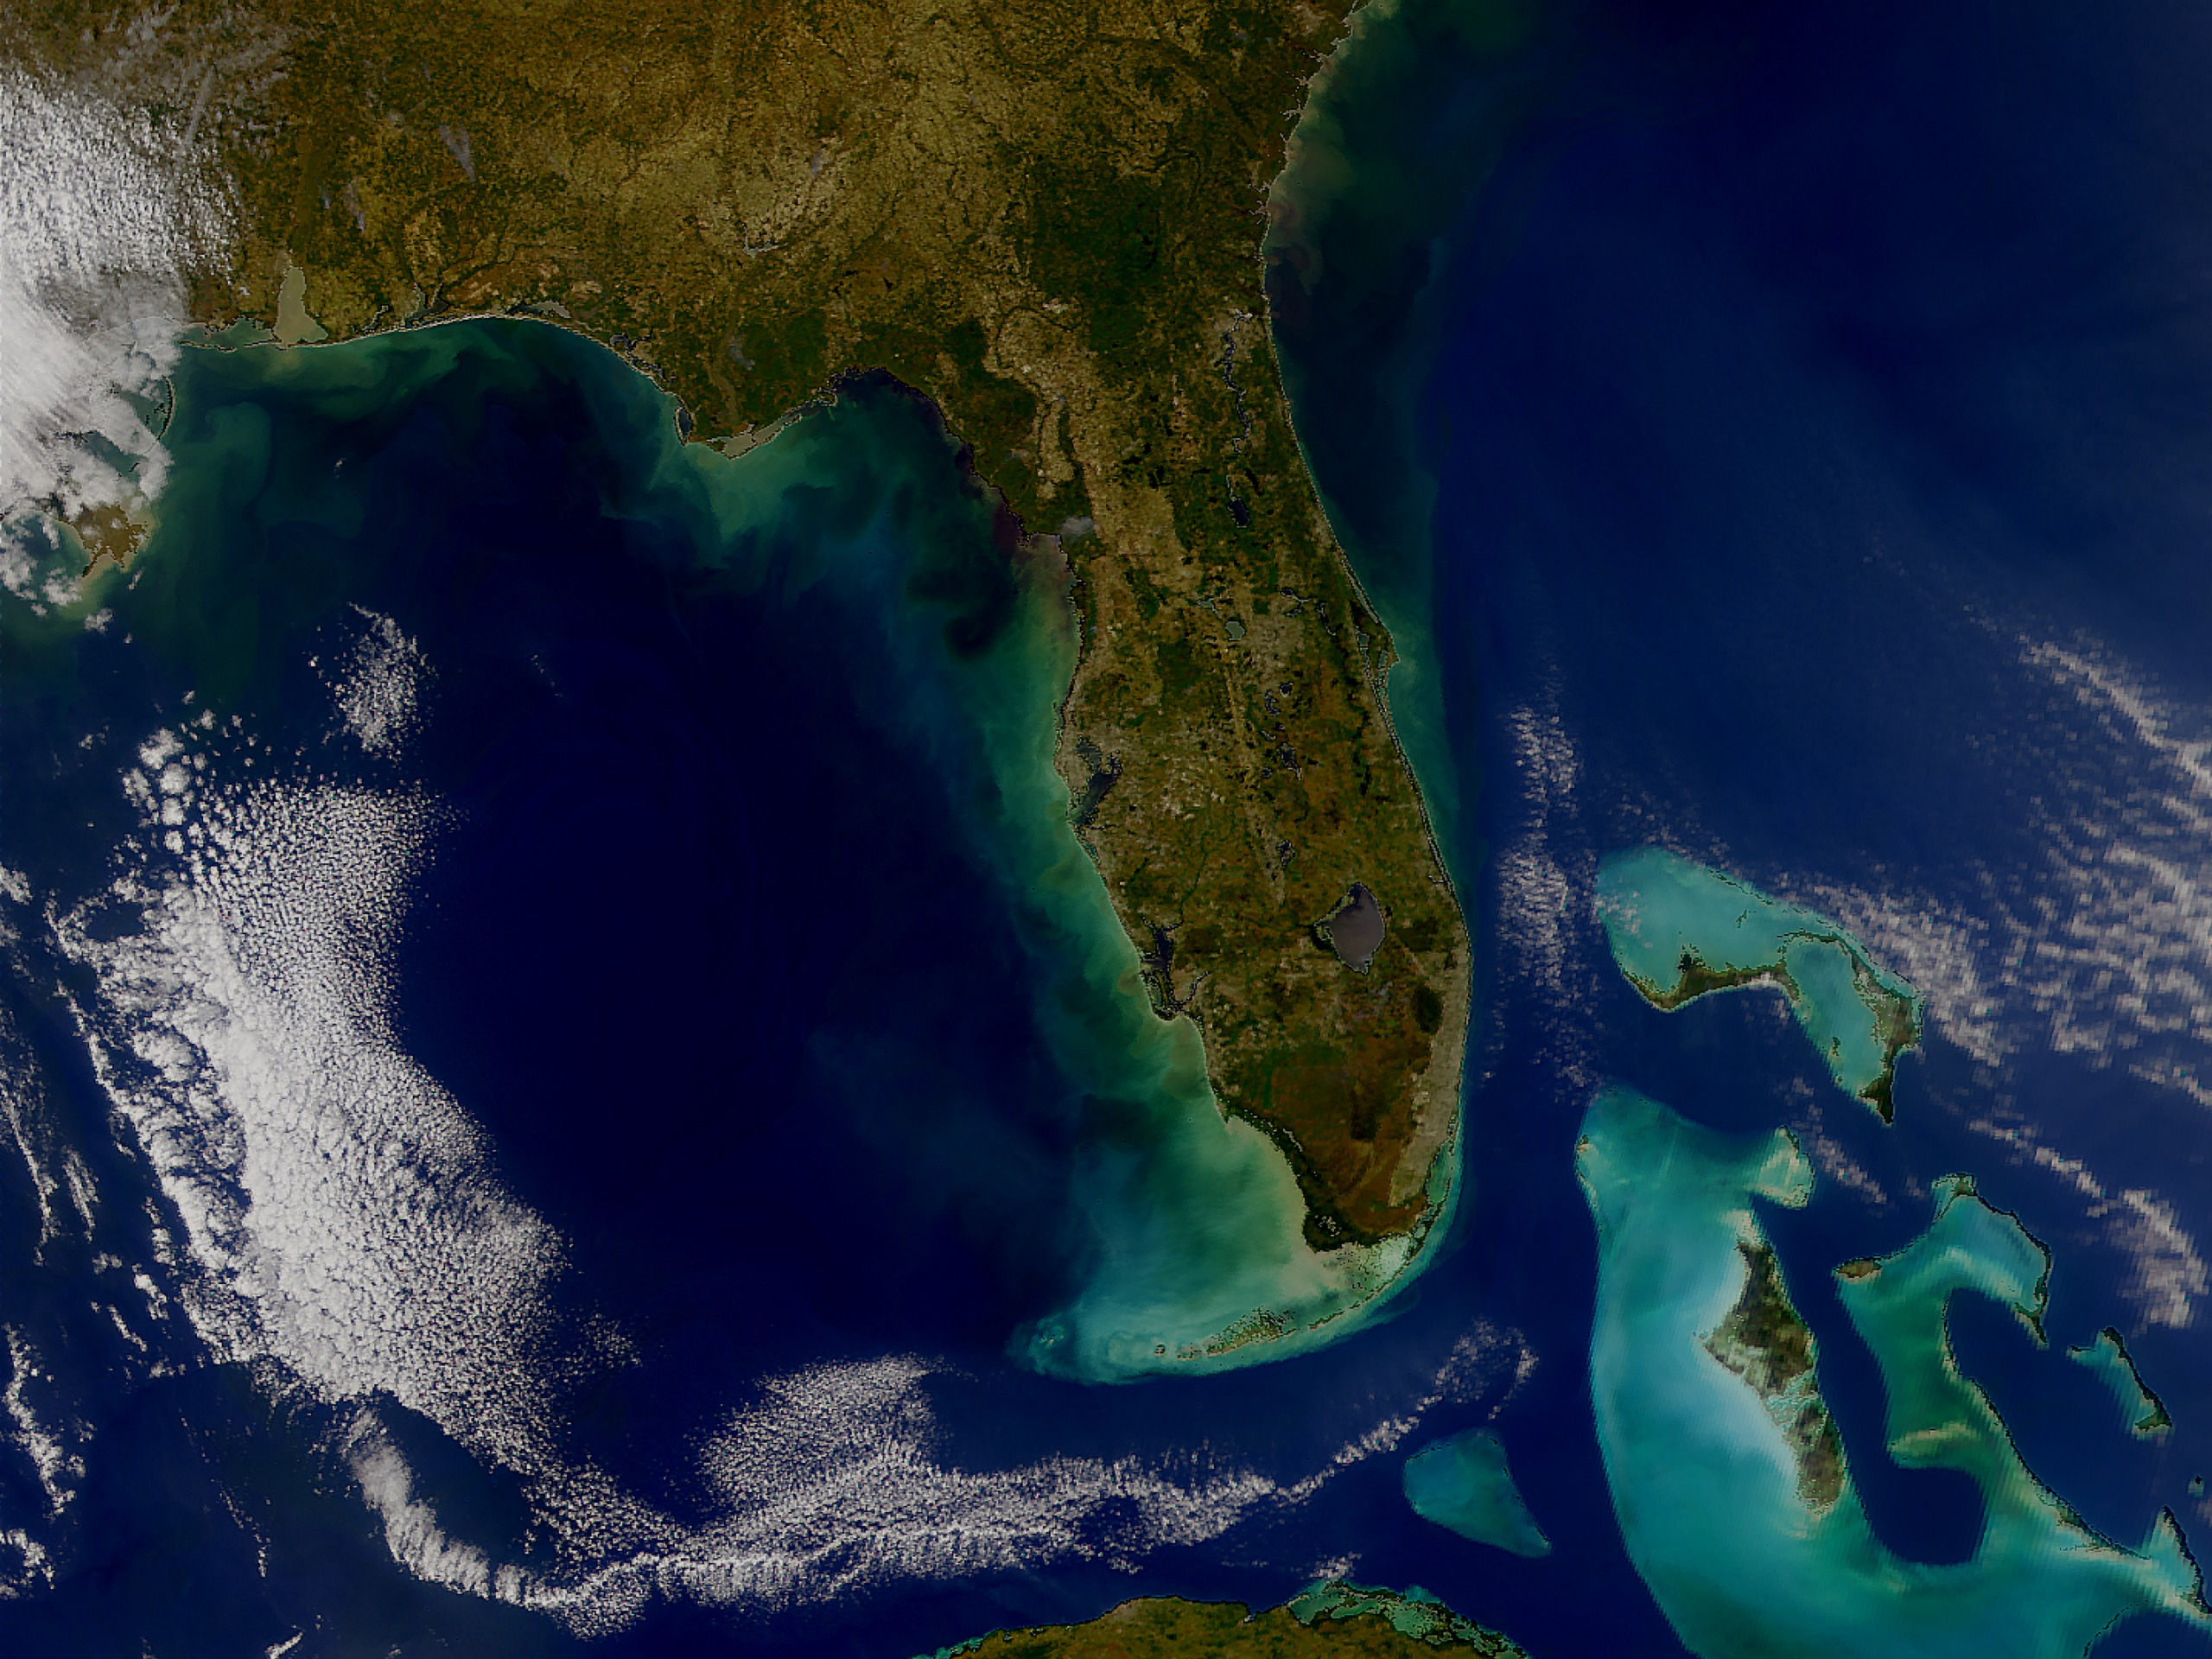 Algae blooms off the coast of Florida